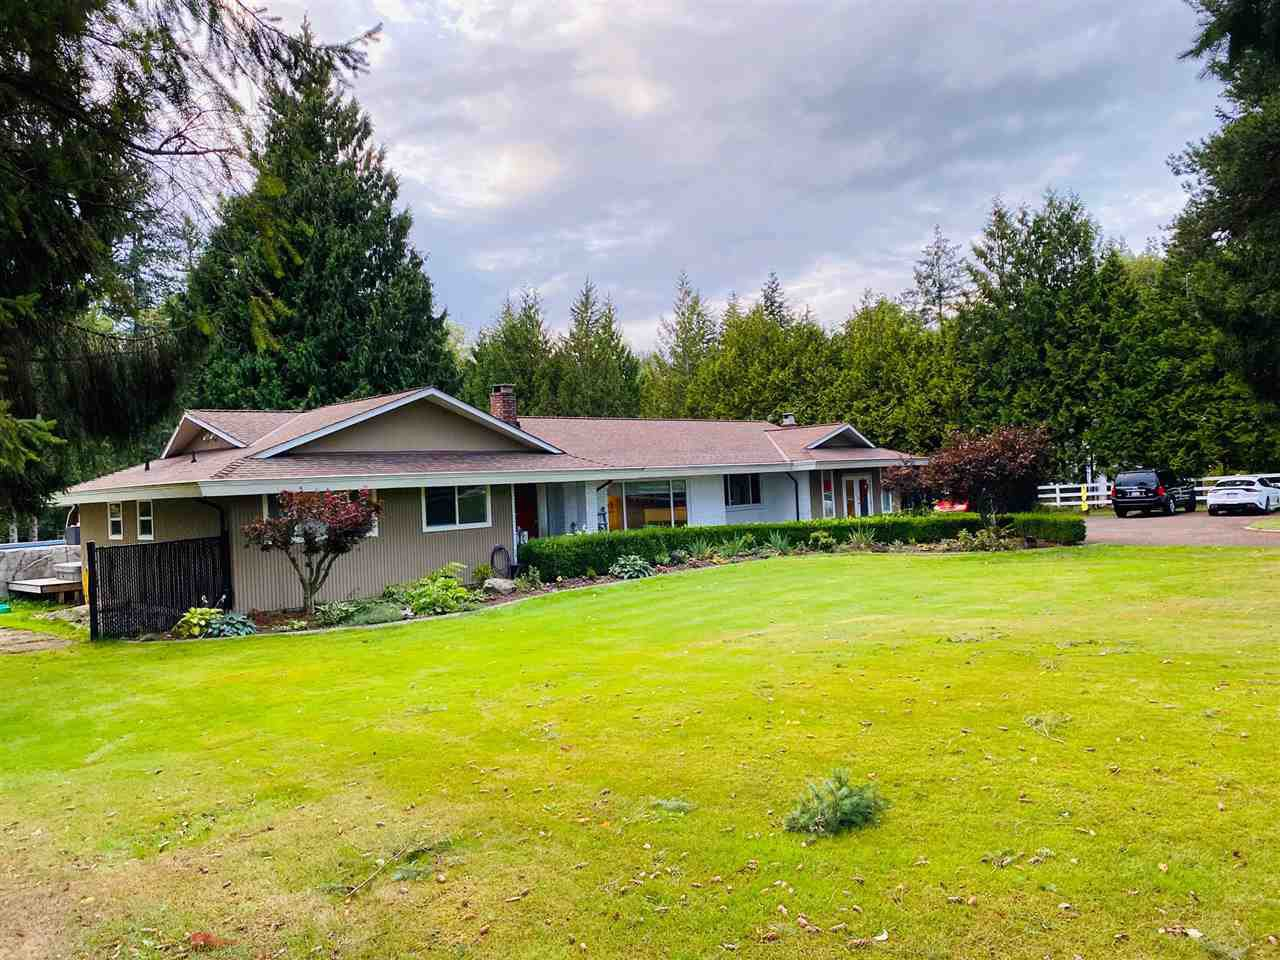 """Main Photo: 2221 216 Street in Langley: Campbell Valley House for sale in """"Campbell Valley"""" : MLS®# R2515990"""